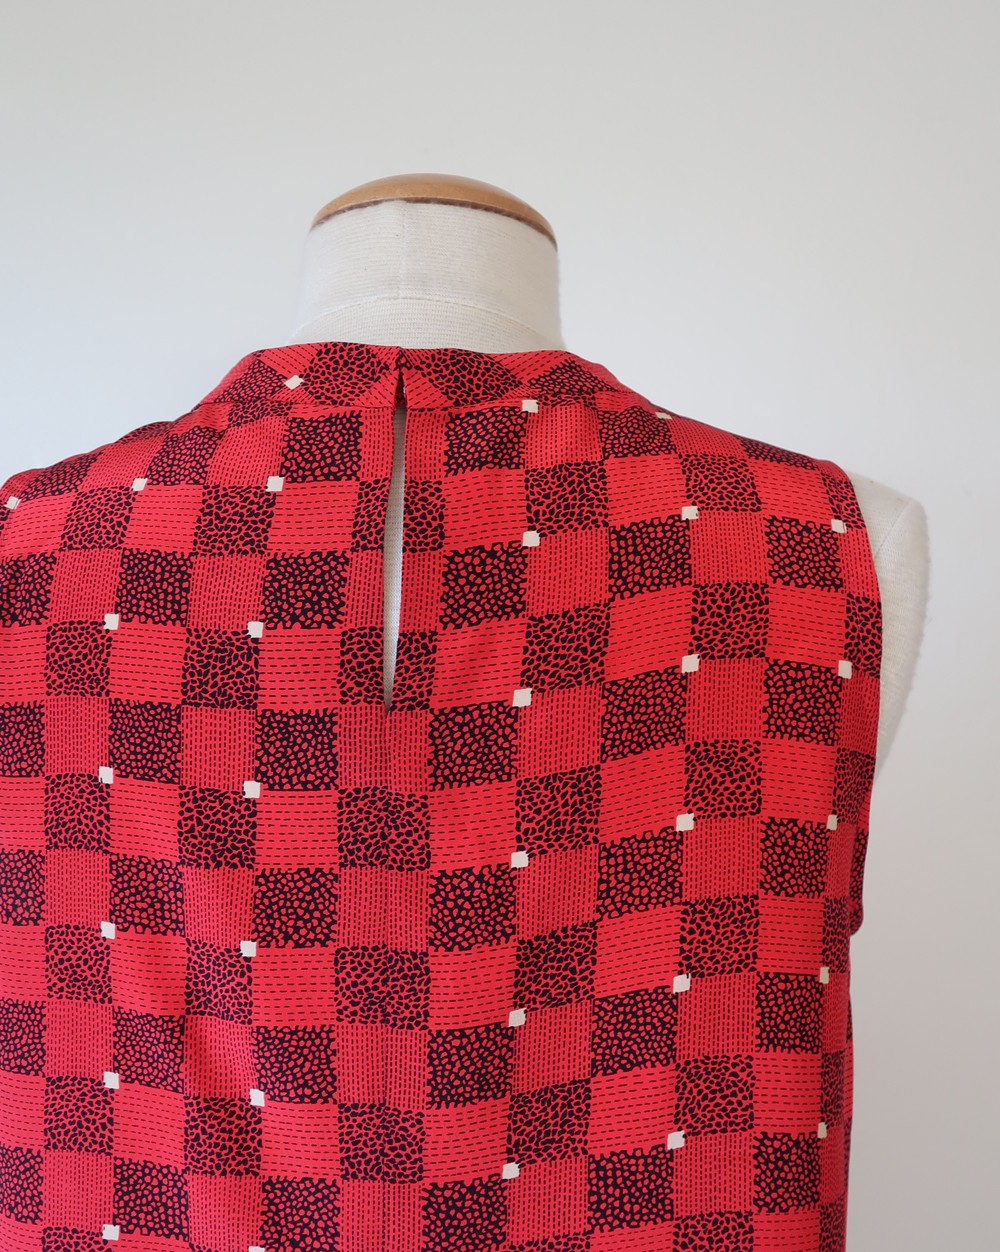 red silk top on form back seam